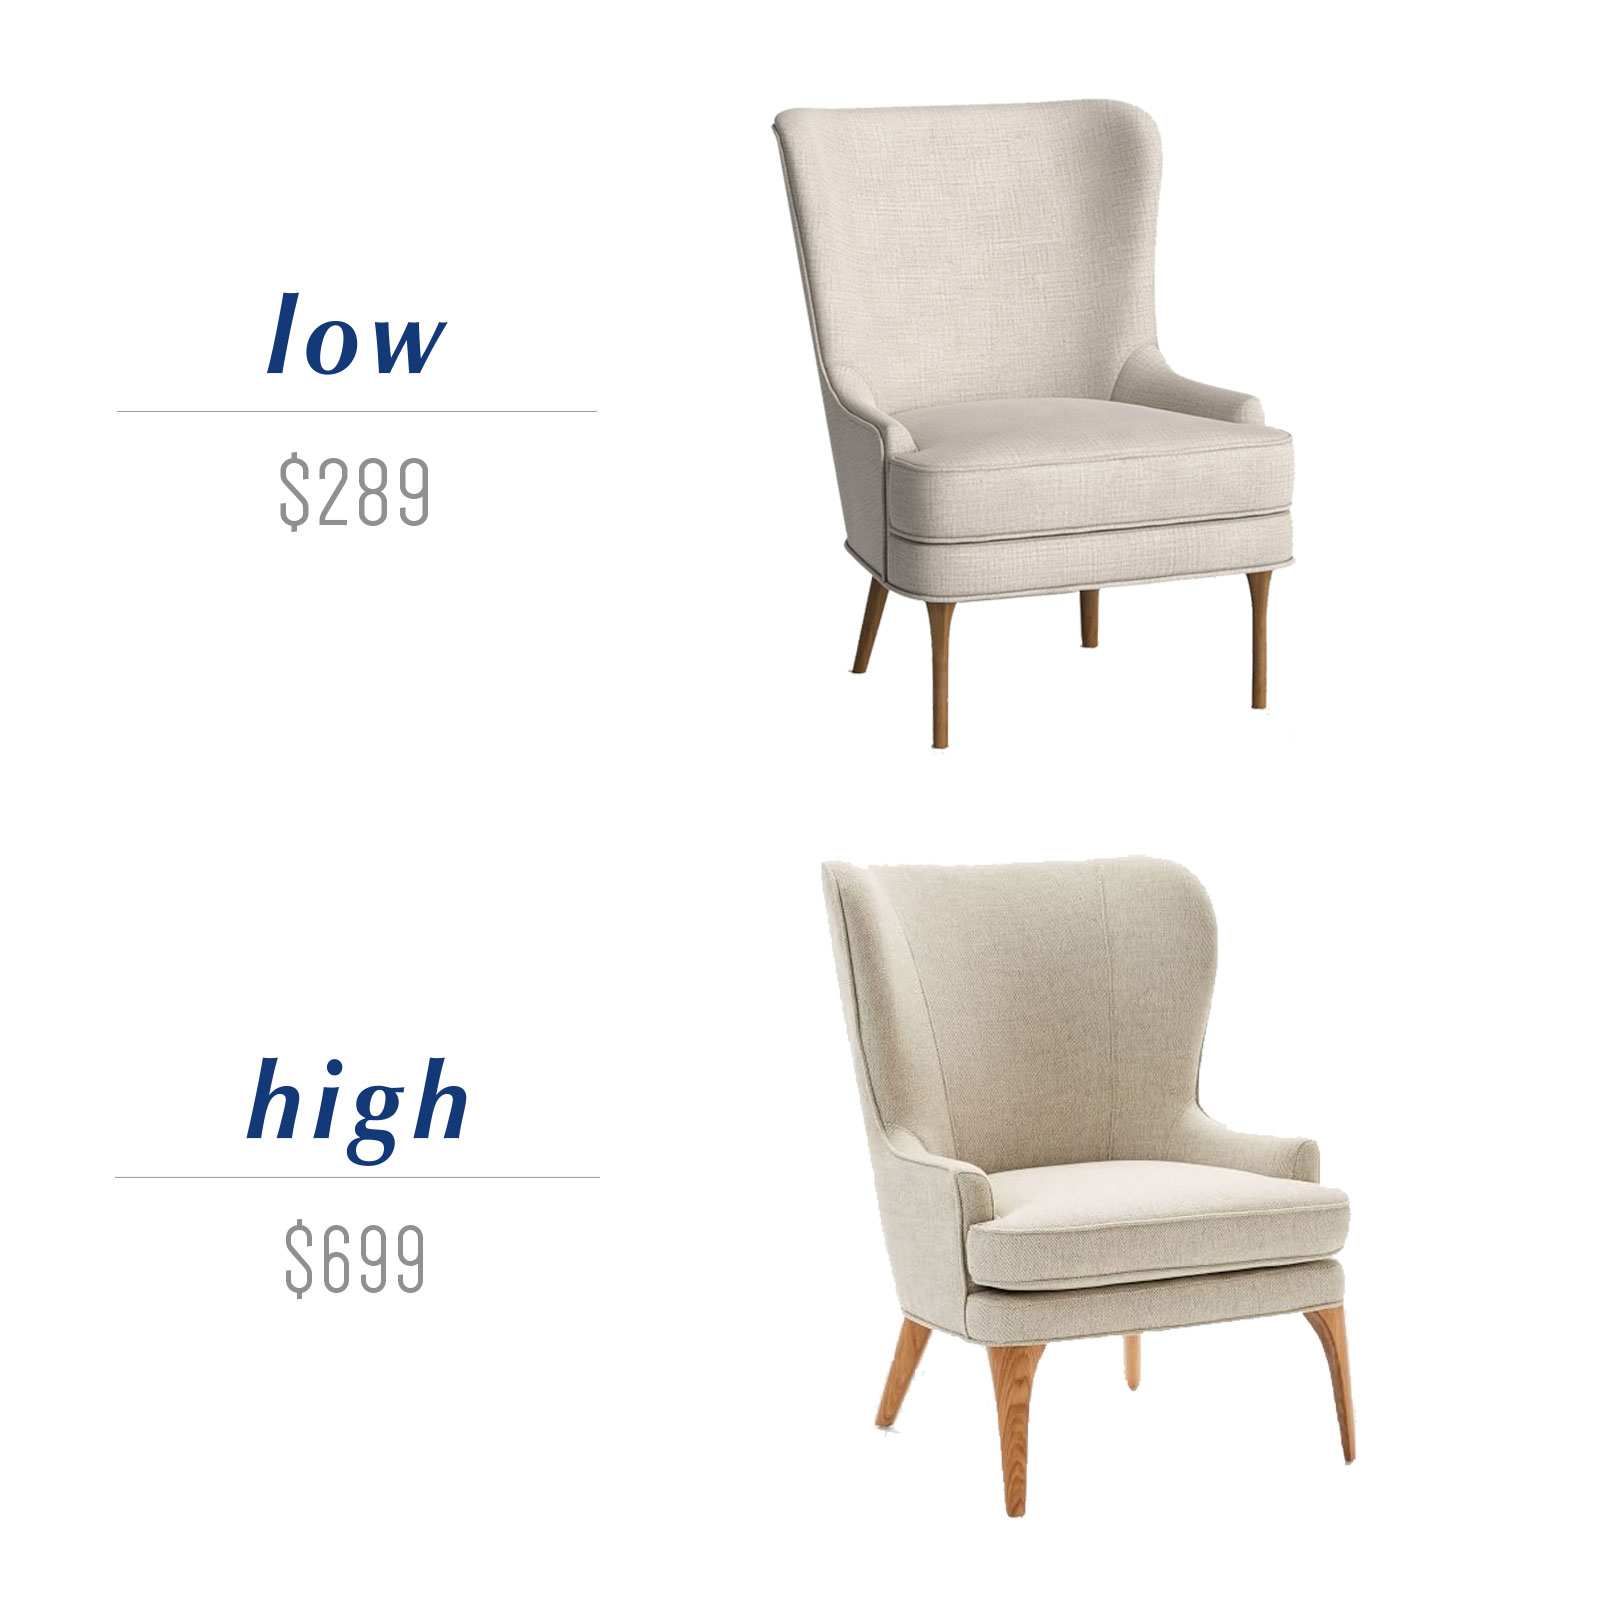 Get the look for less or decide to splurge! Come see the budget-friendly and spend-worthy pieces of furniture in this blog post including the high/low sources for this modern wingback chair.